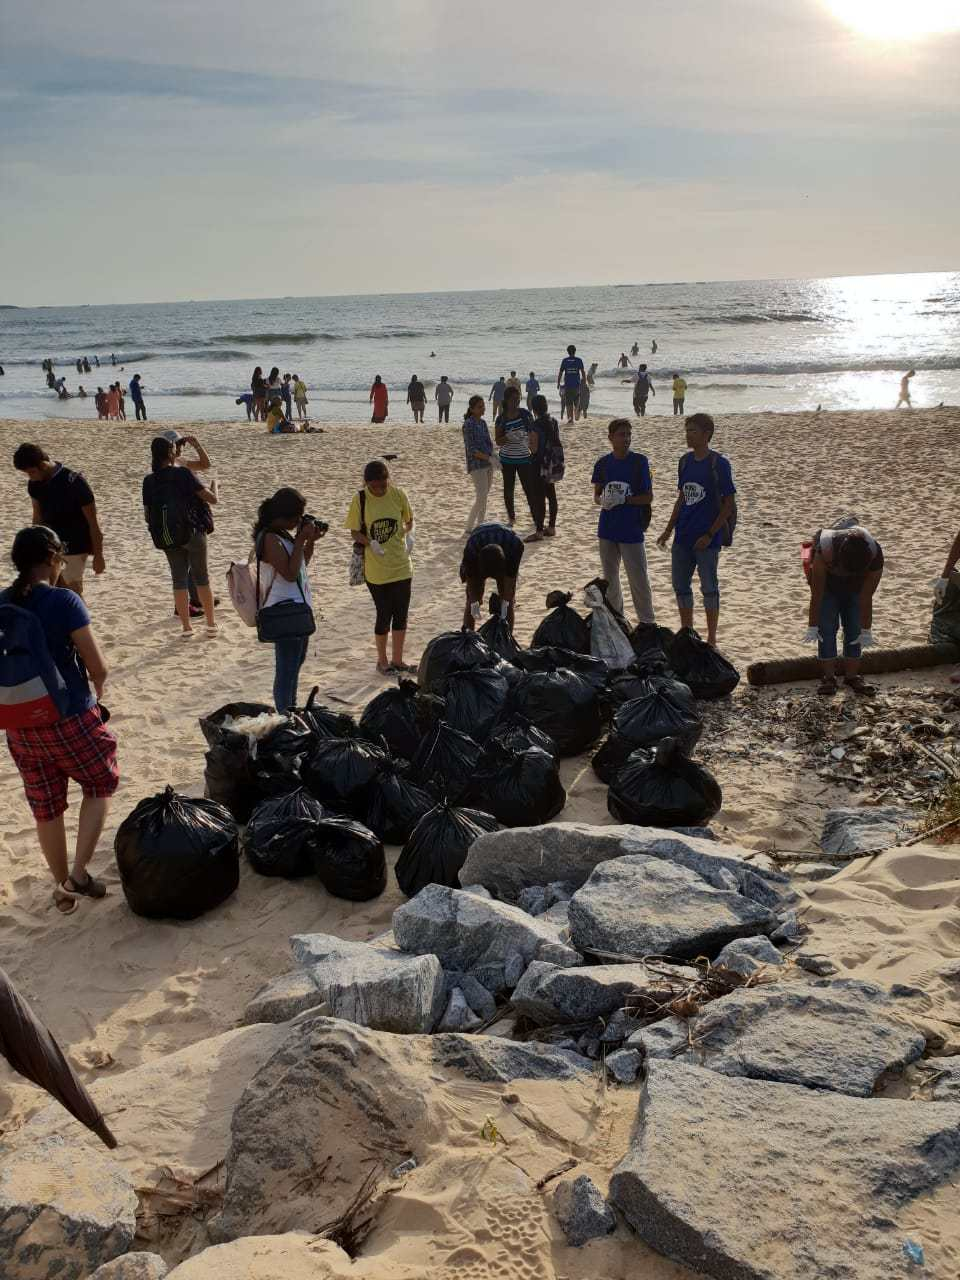 AIESEC delivers World Cleanup Day in partnership with Let's Do It! India